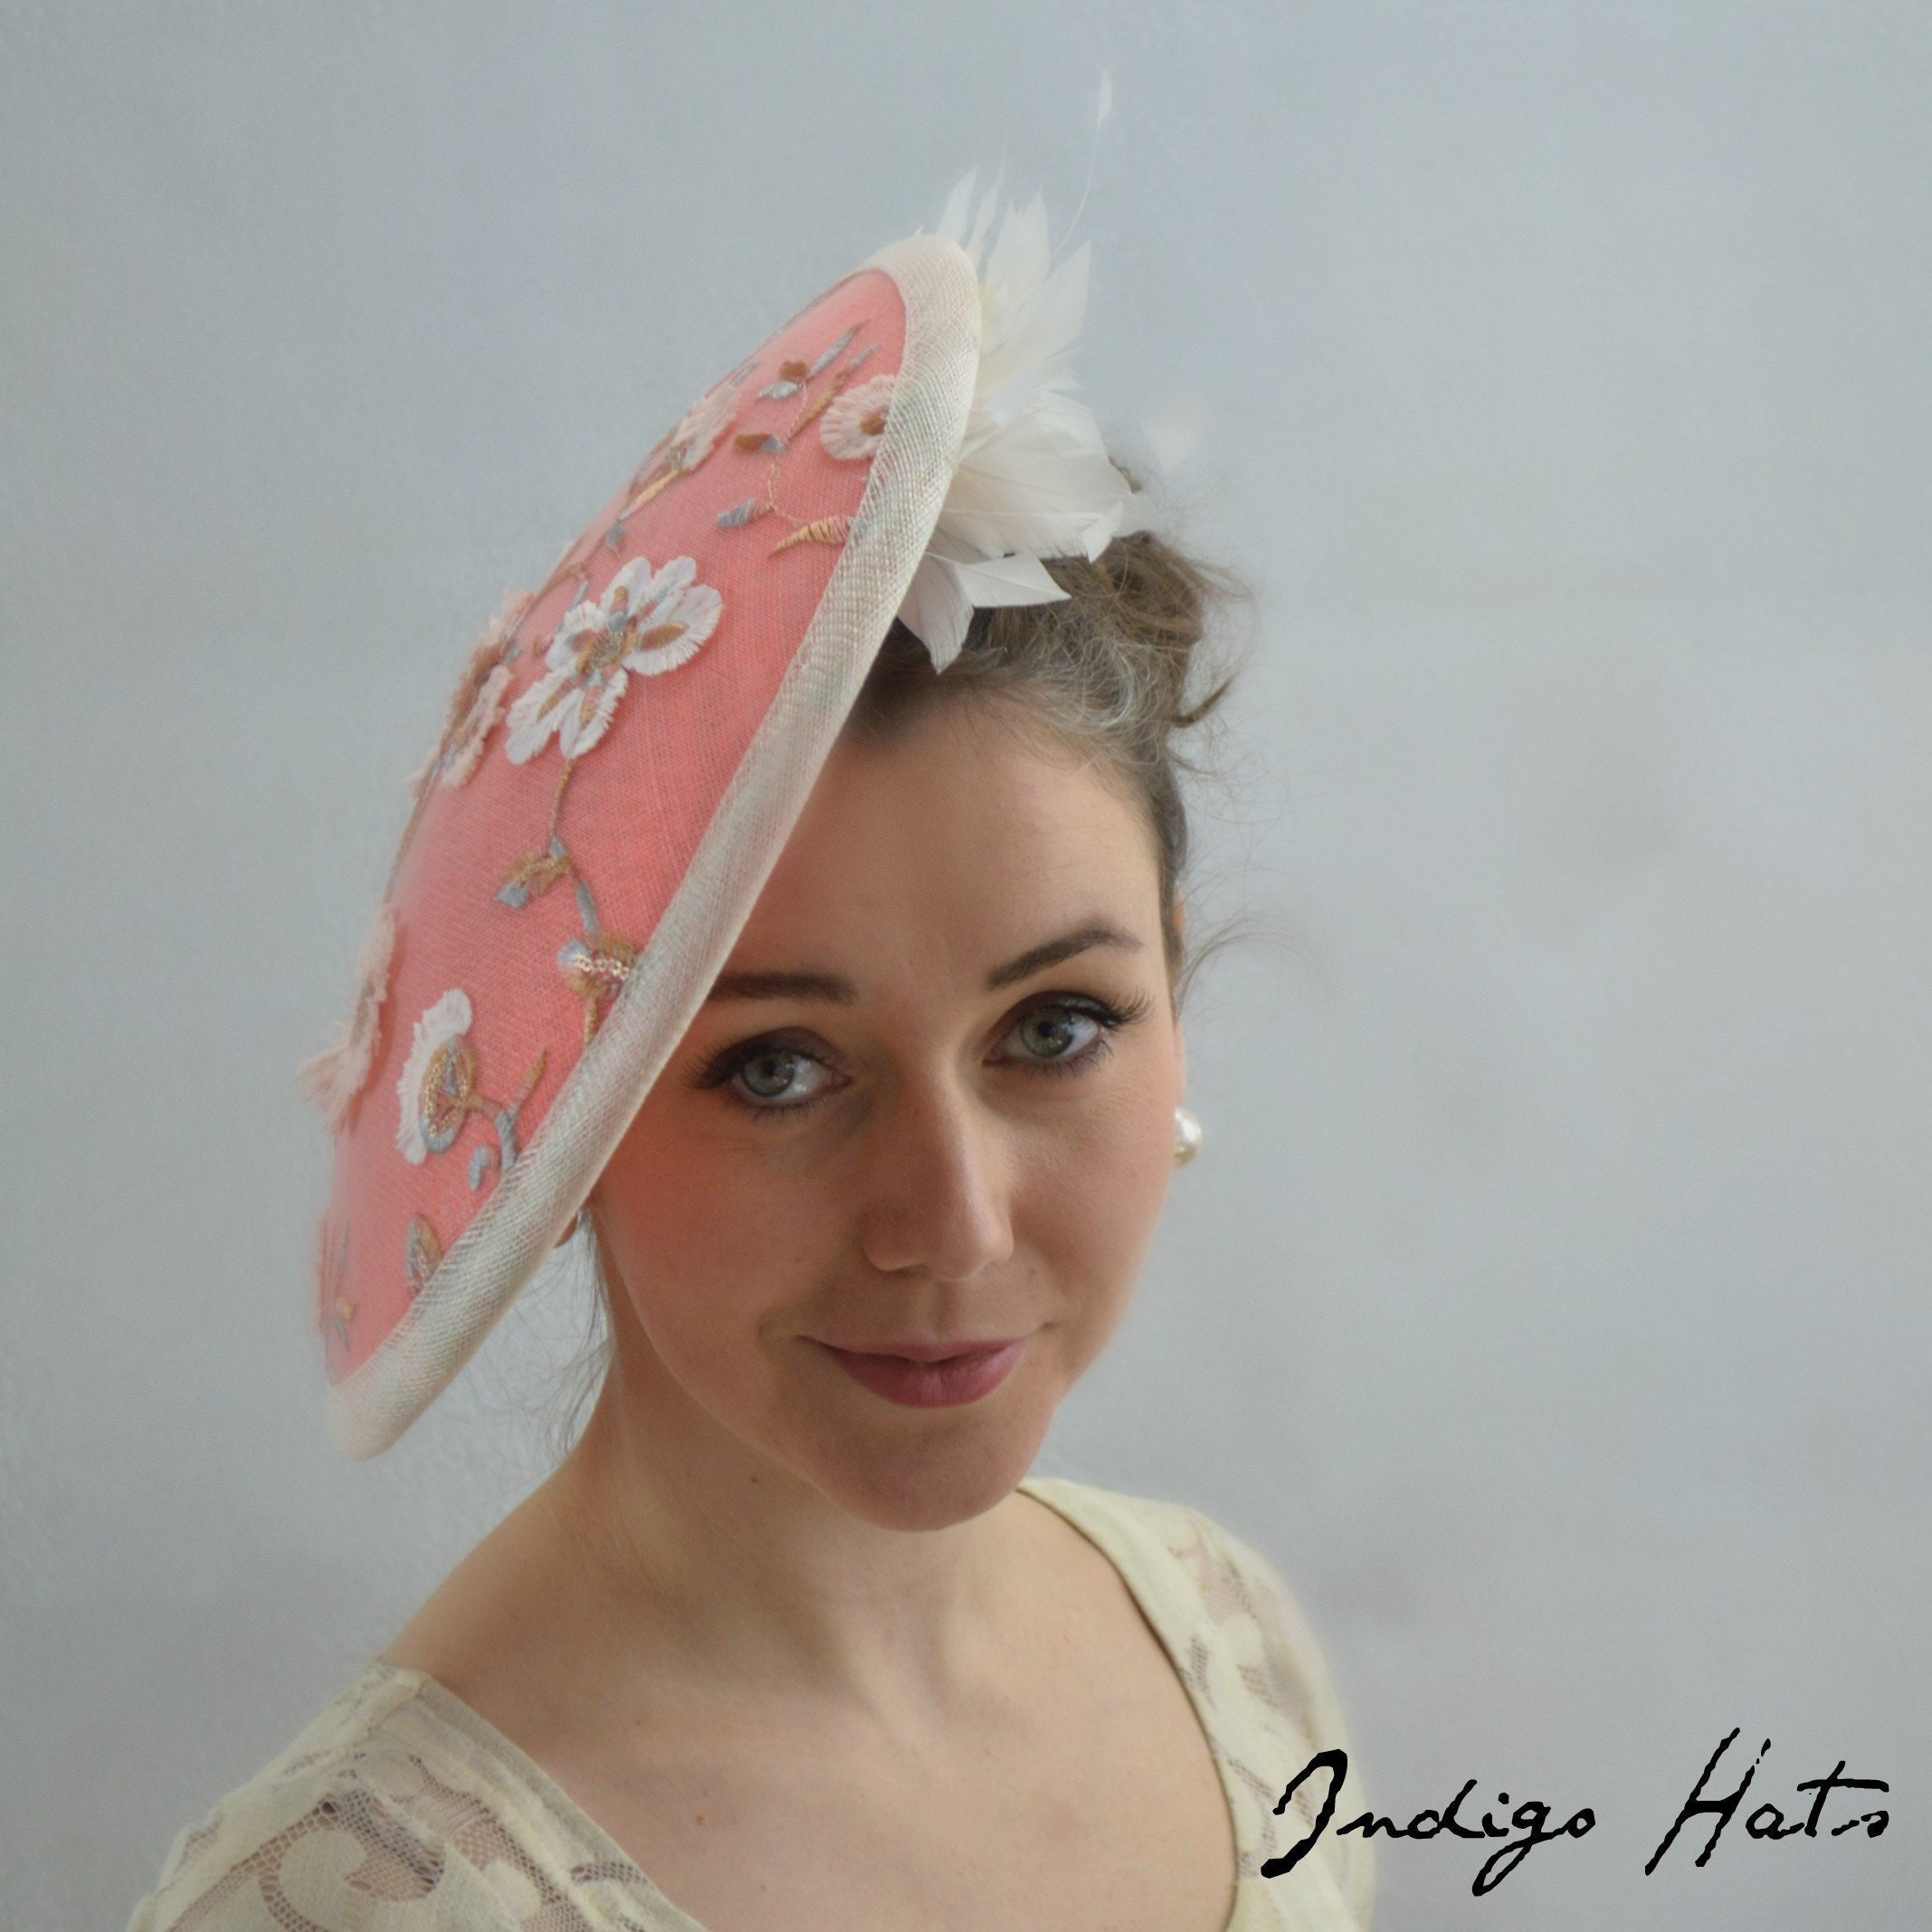 694318c5 PEACHES & CREAM, Coral Melbourne Cup or Kentucky Derby Hat for women.  Mother of the Bride, NYC Conservancy Luncheon or Church fascinator.